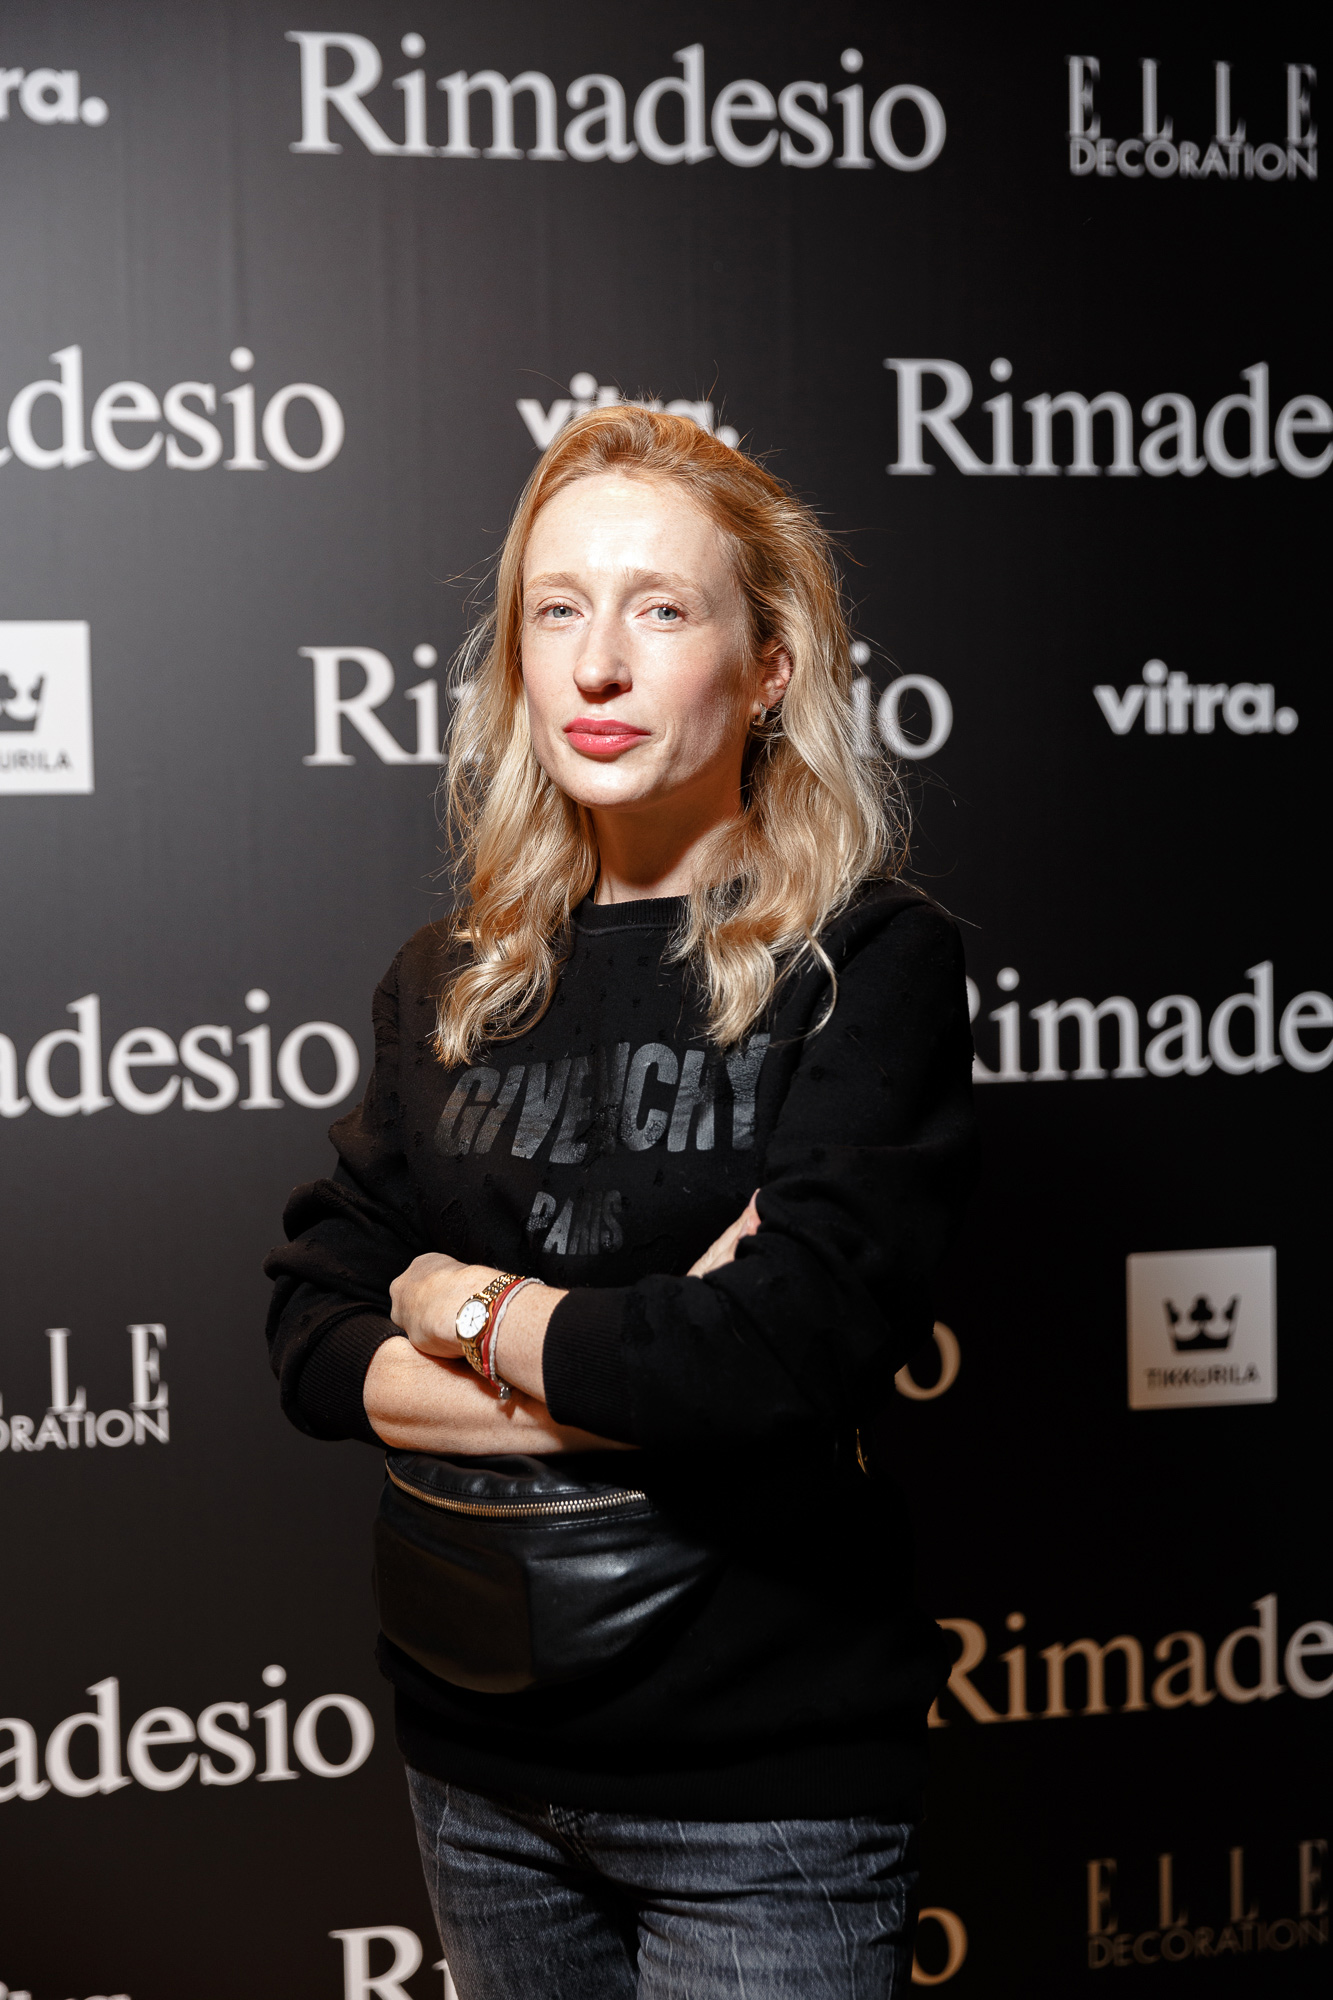 rimadesio-moscow-183